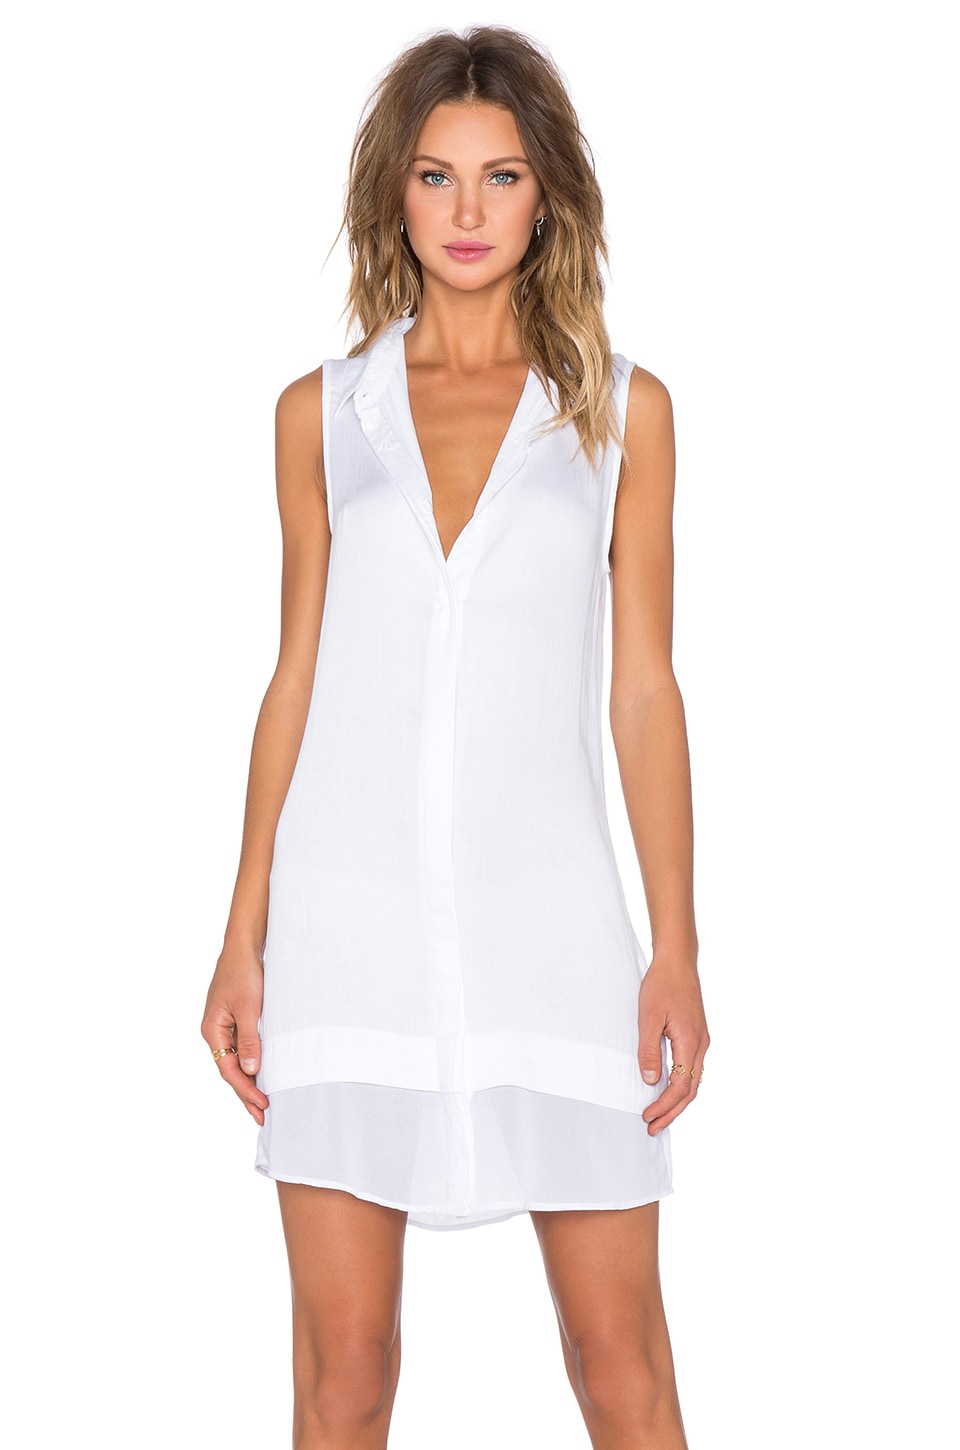 State of Being Ash Shirtdress in White